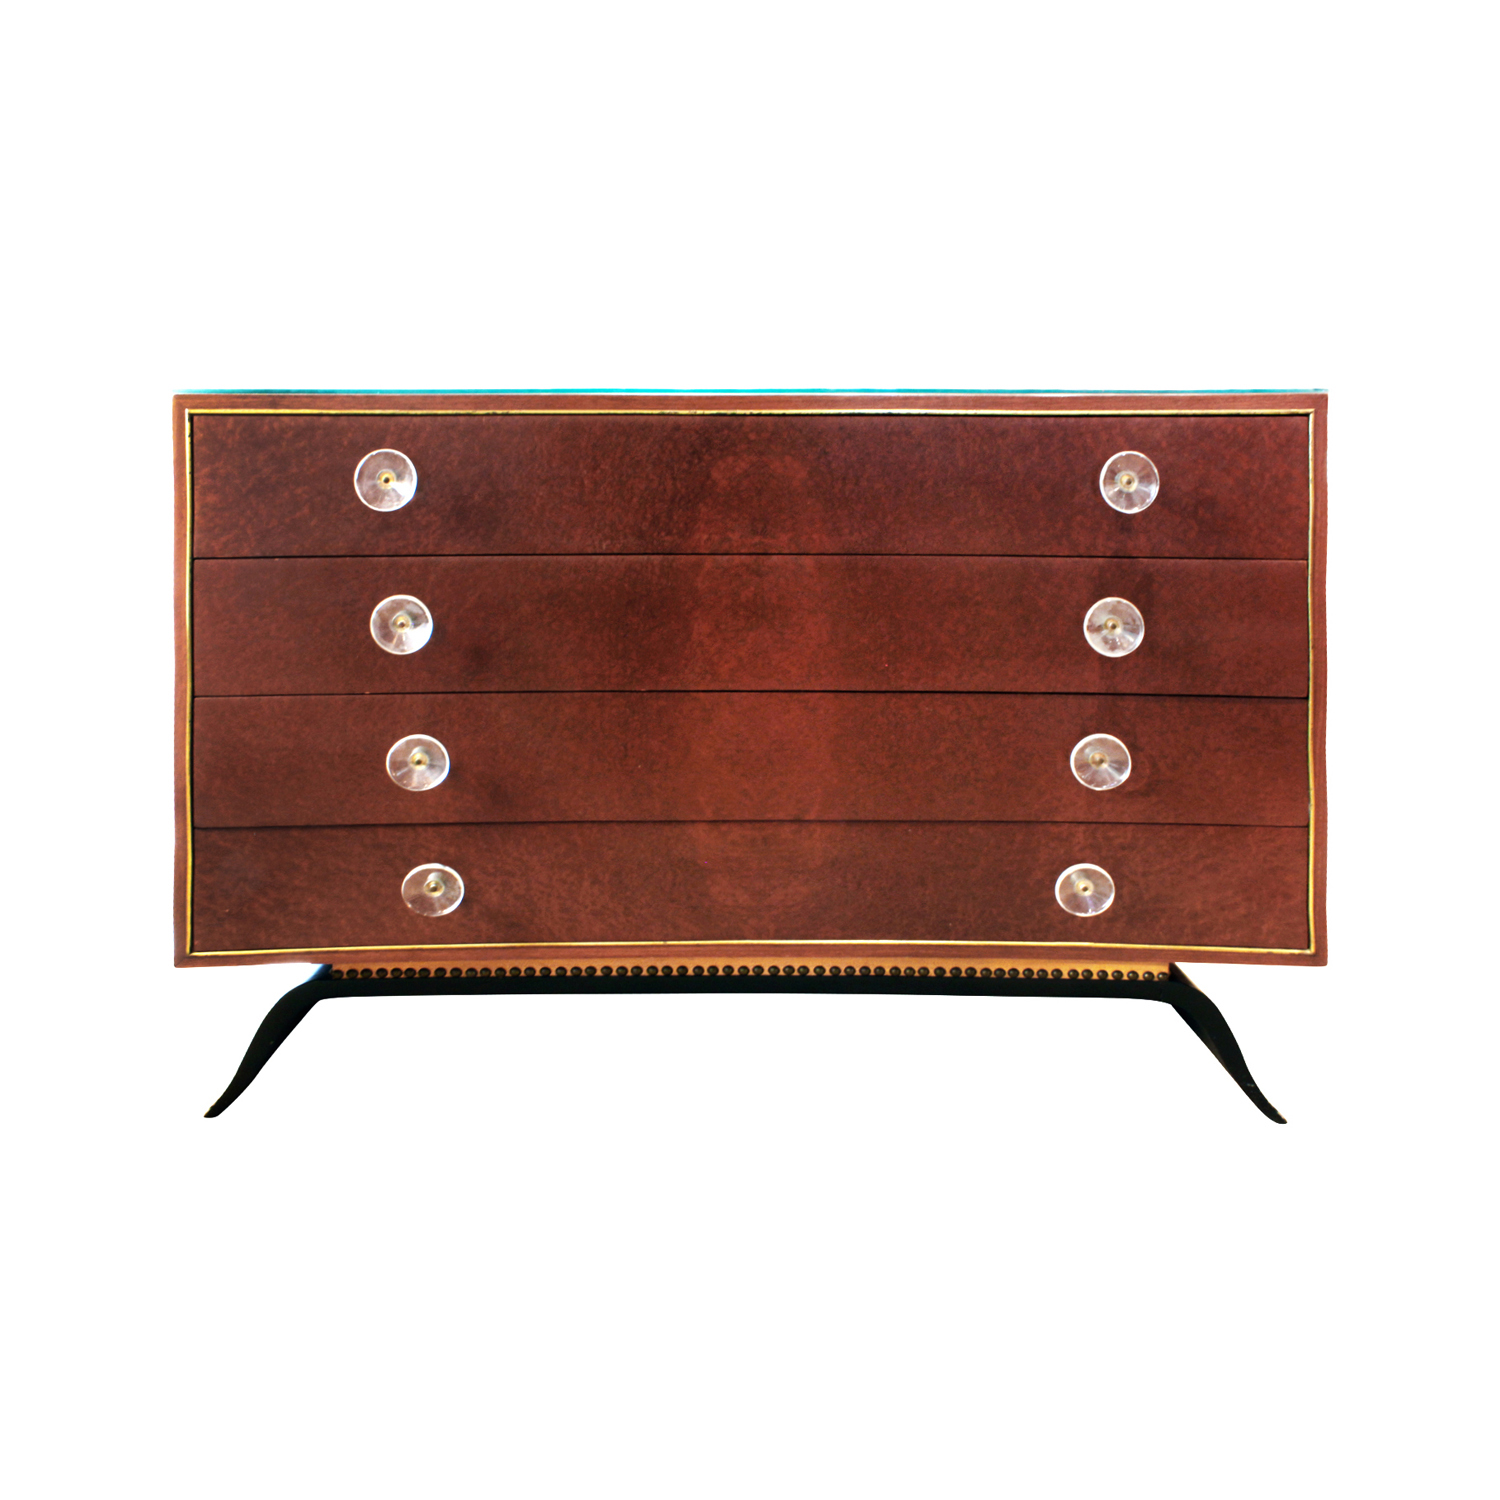 Rohde 120 rosewood+burl+lucite pul chestofdrawers99 front.JPG